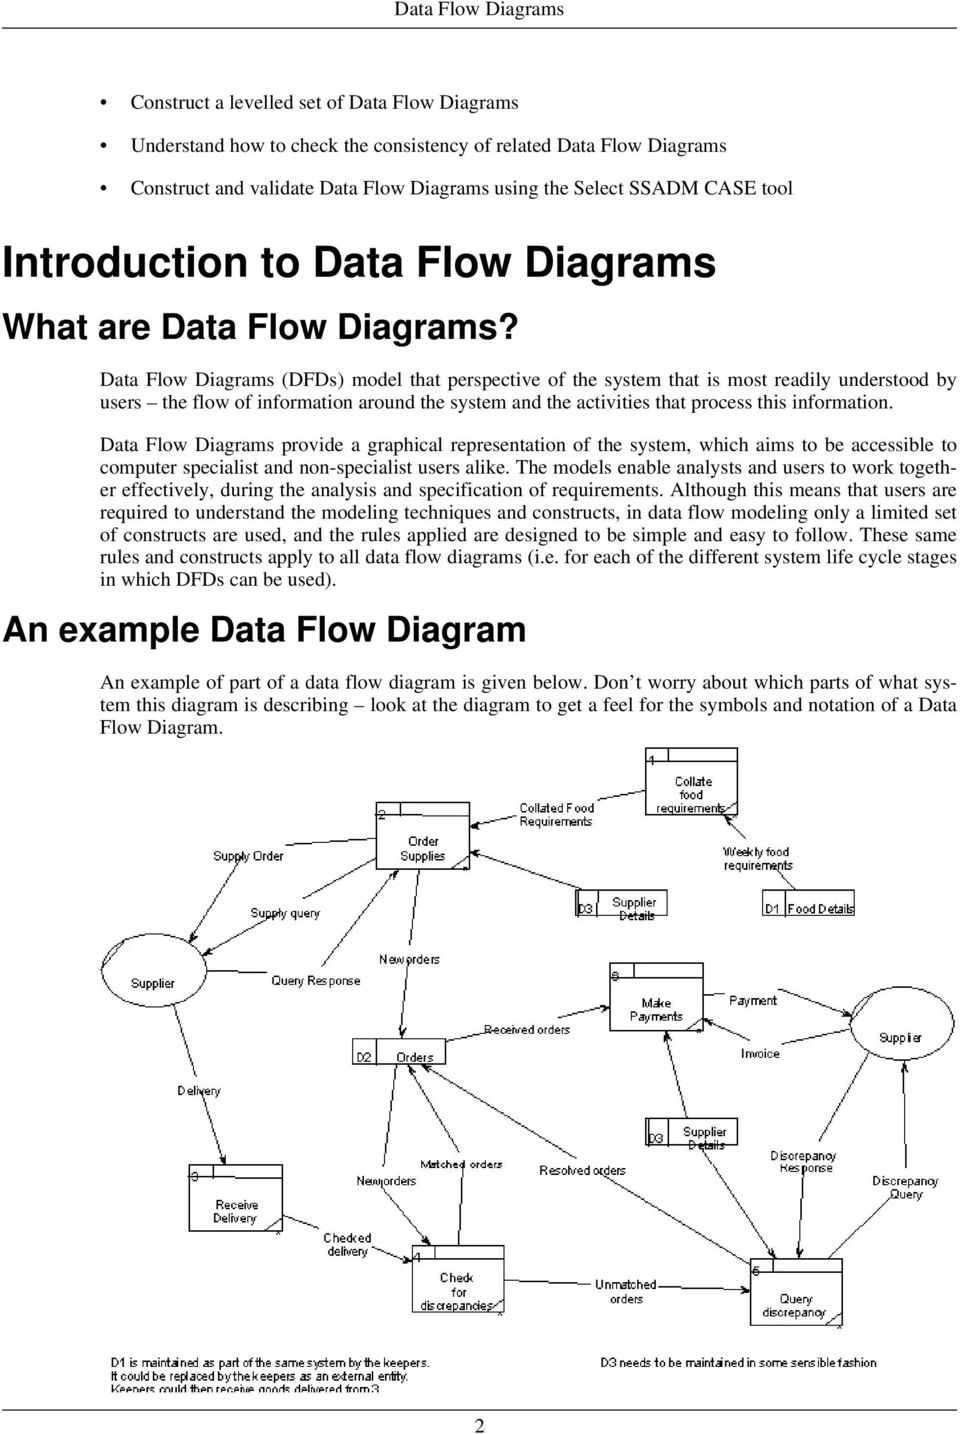 Chapter 3 Data Flow Diagrams Pdf Process Diagram Vs Dfds Model That Perspective Of The System Is Most Readily